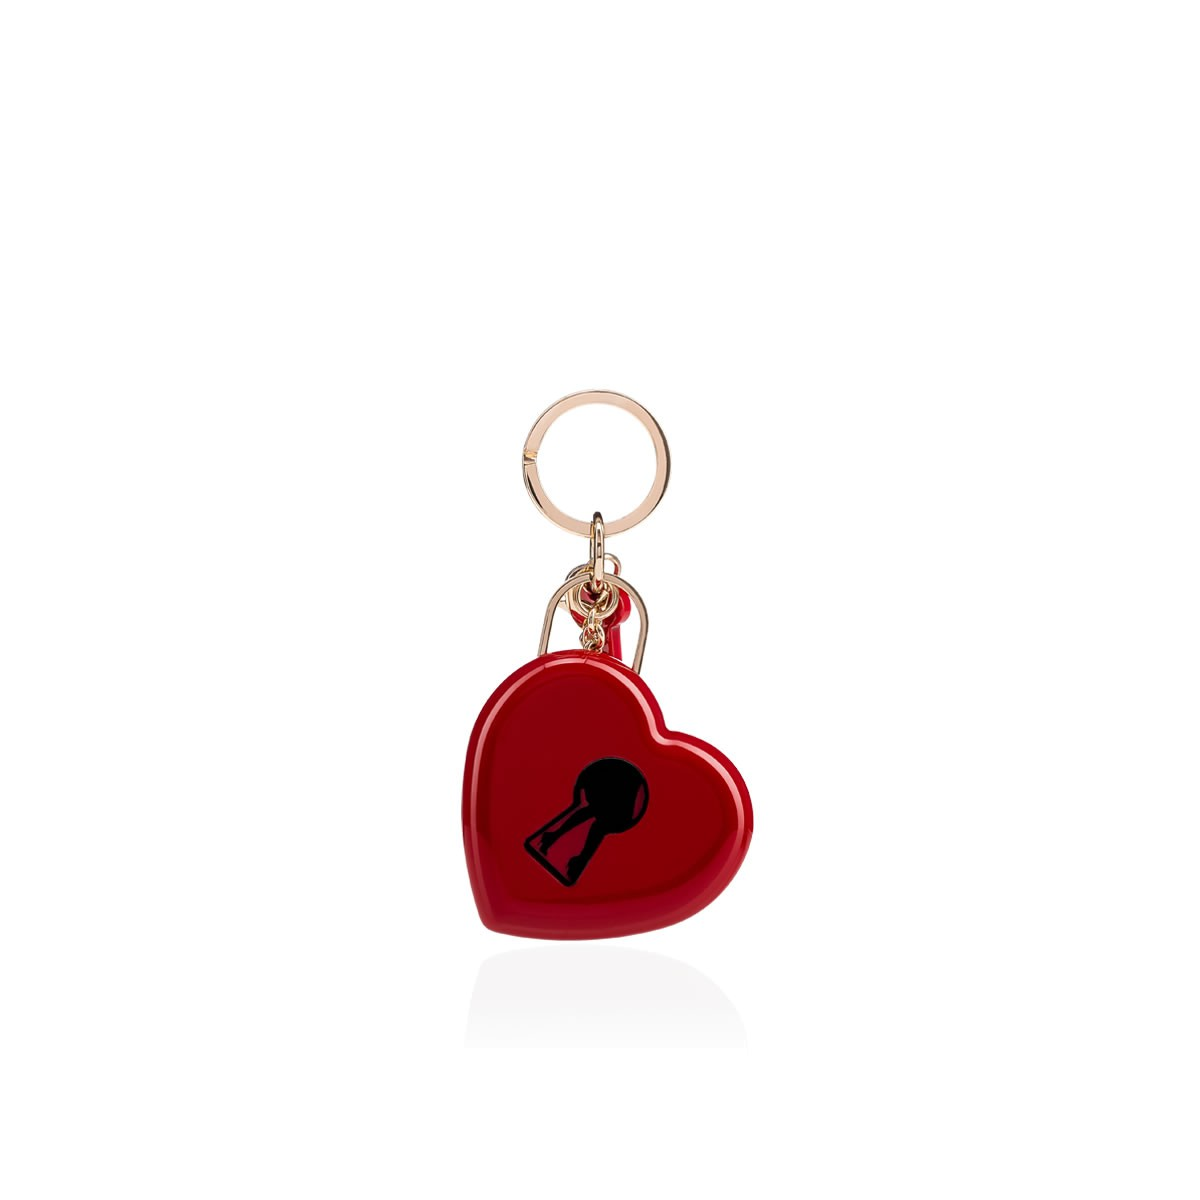 Accessories - Loubicoeur Keyring - Christian Louboutin